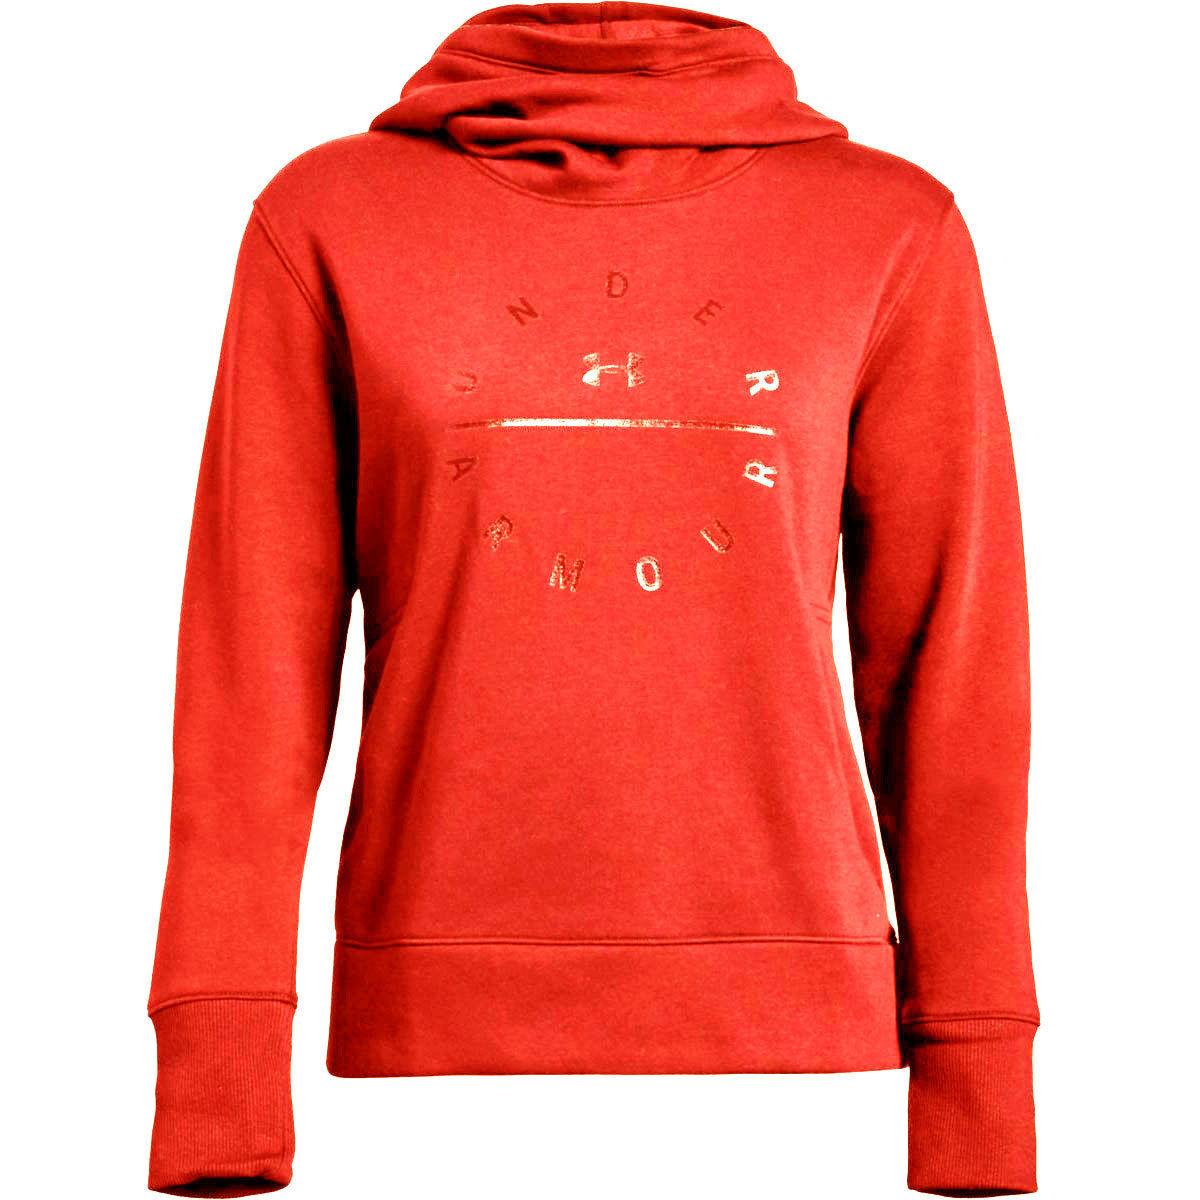 Under Armour Women's Ua Rival Fleece Tonal Graphic Pullover Hoodie - Orange, XL